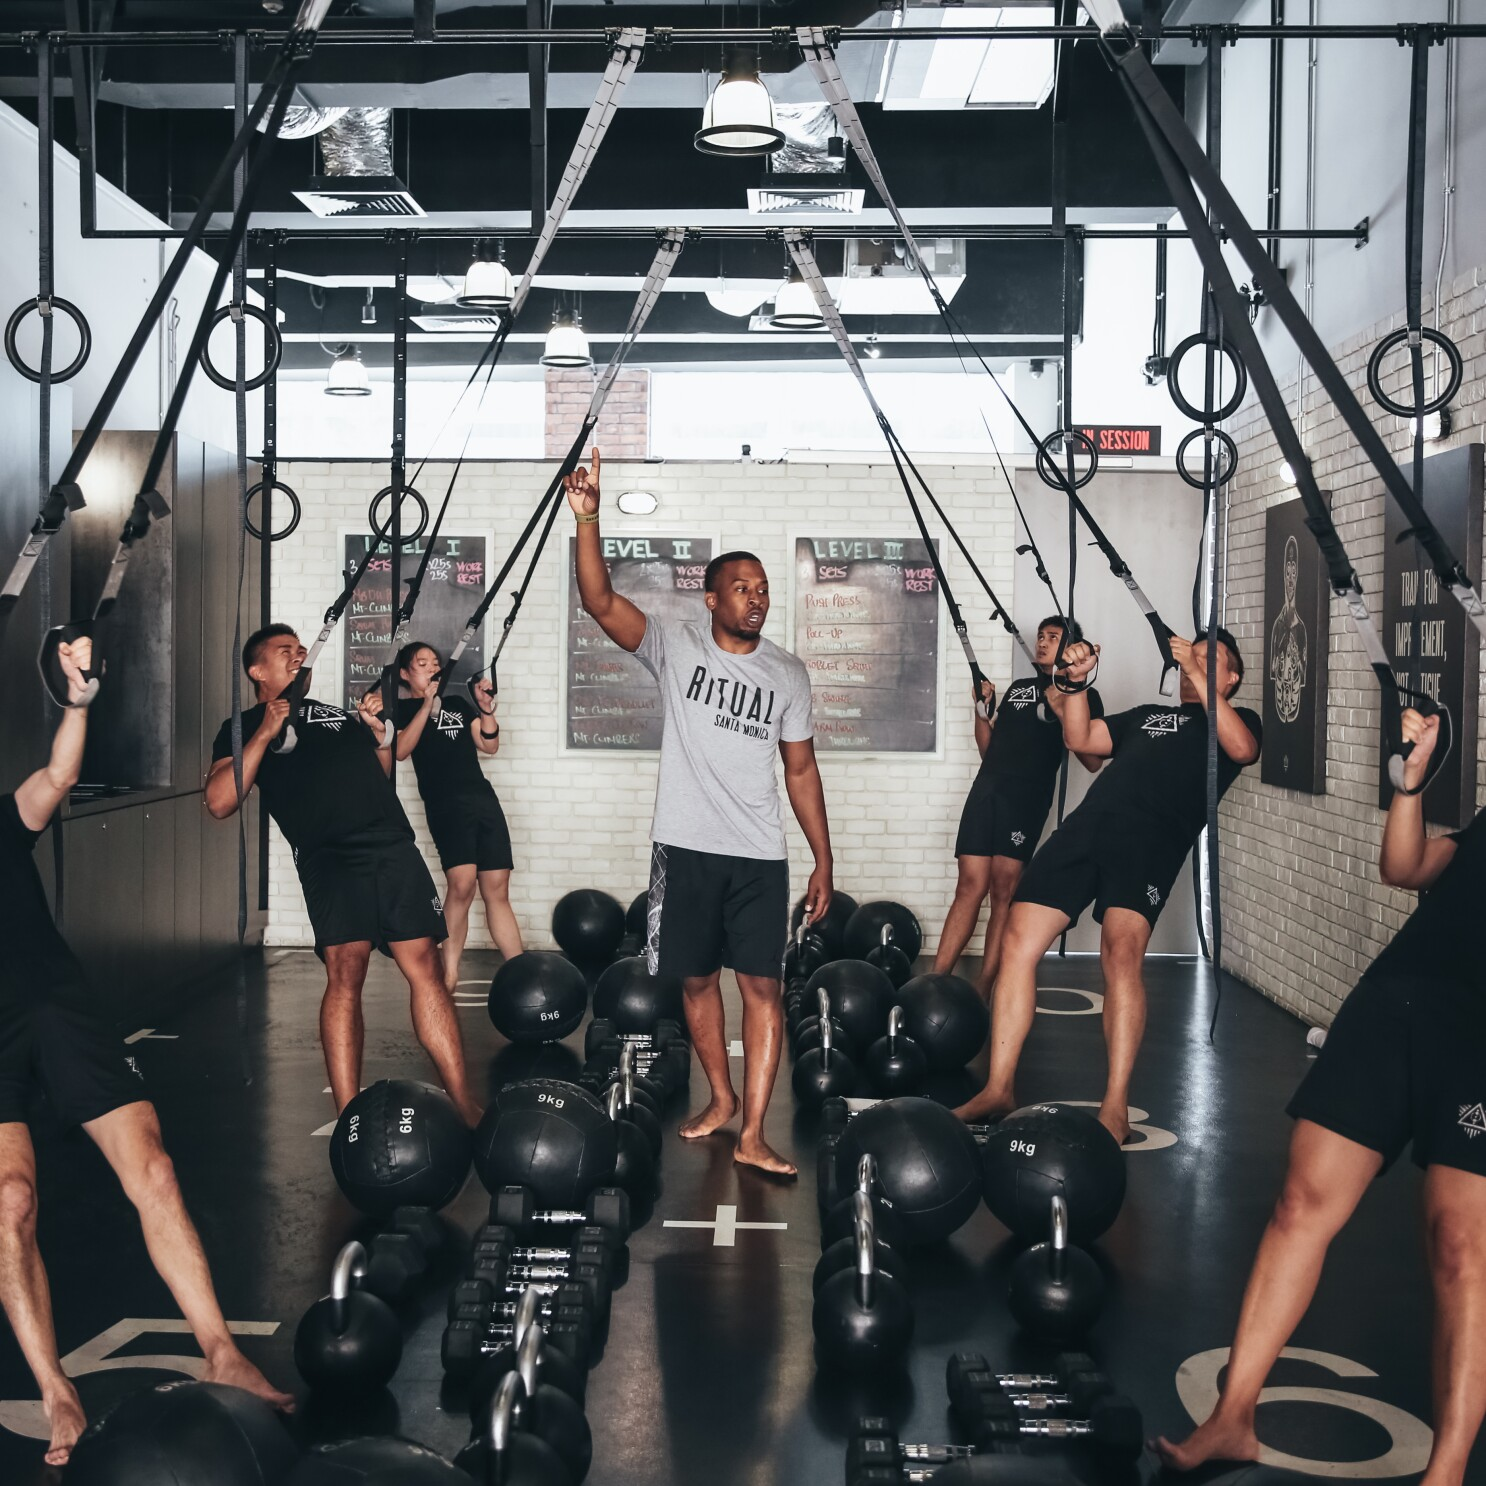 Looking to level up your fitness? 5 wellness hot spots to try